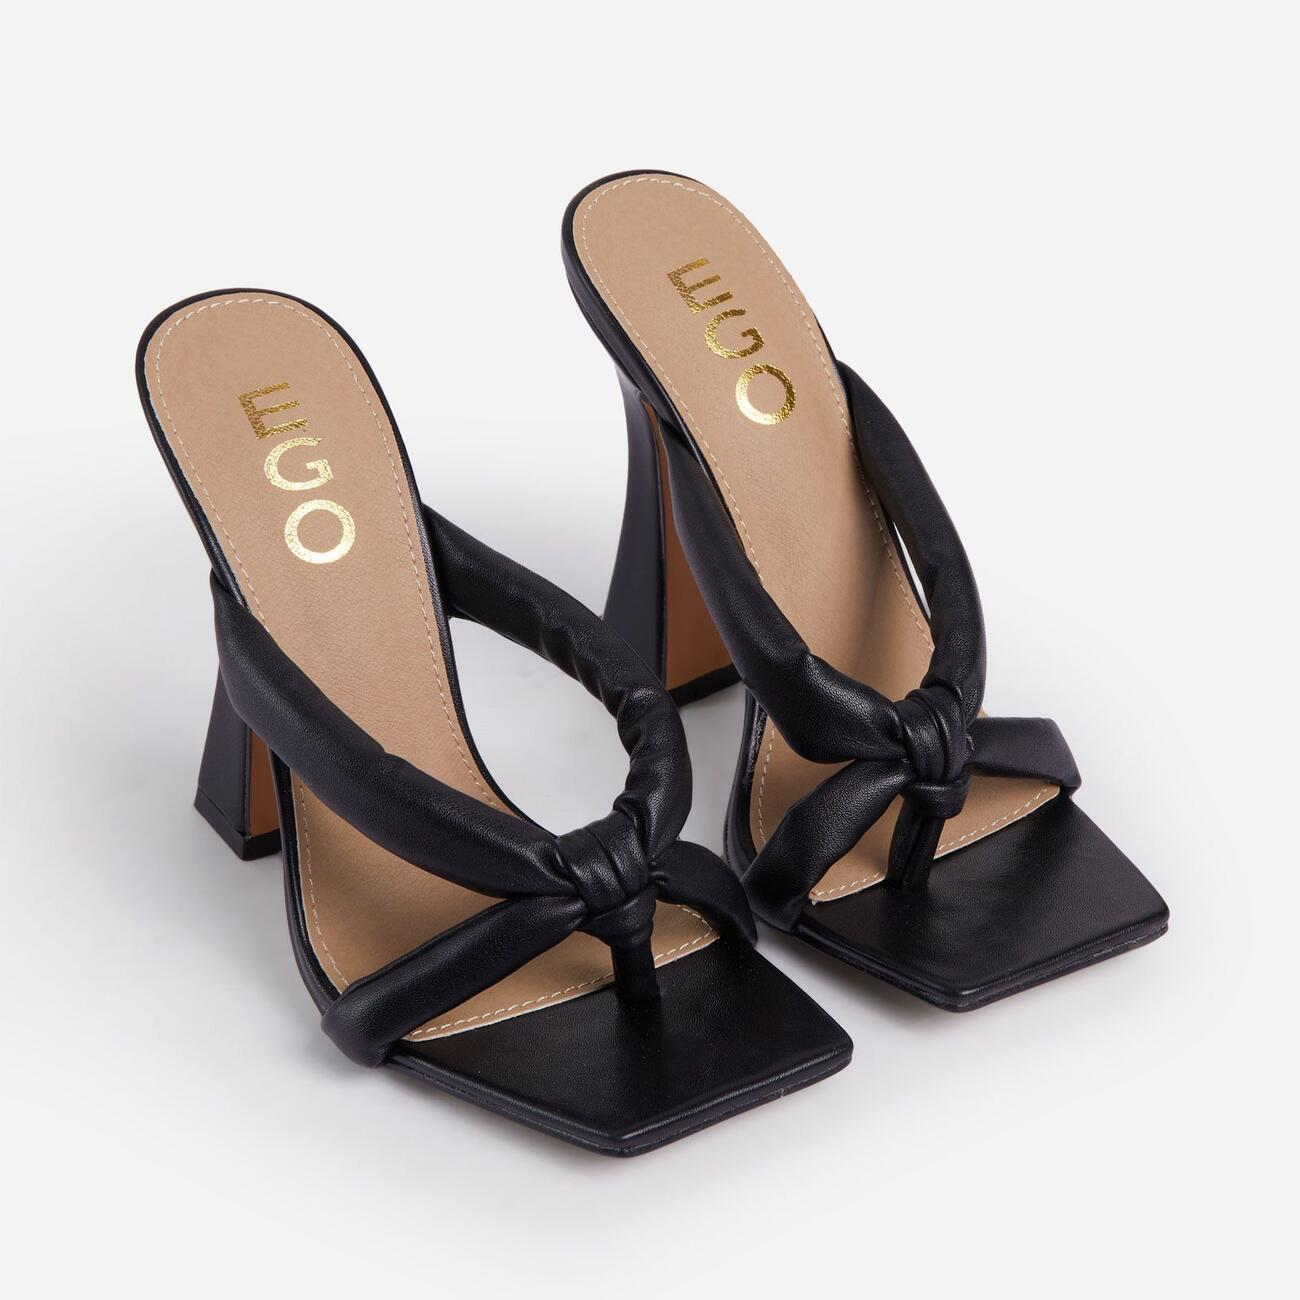 Loyal Padded Cross Strap Square Toe Heel Mule In Black Faux Leather Image 2